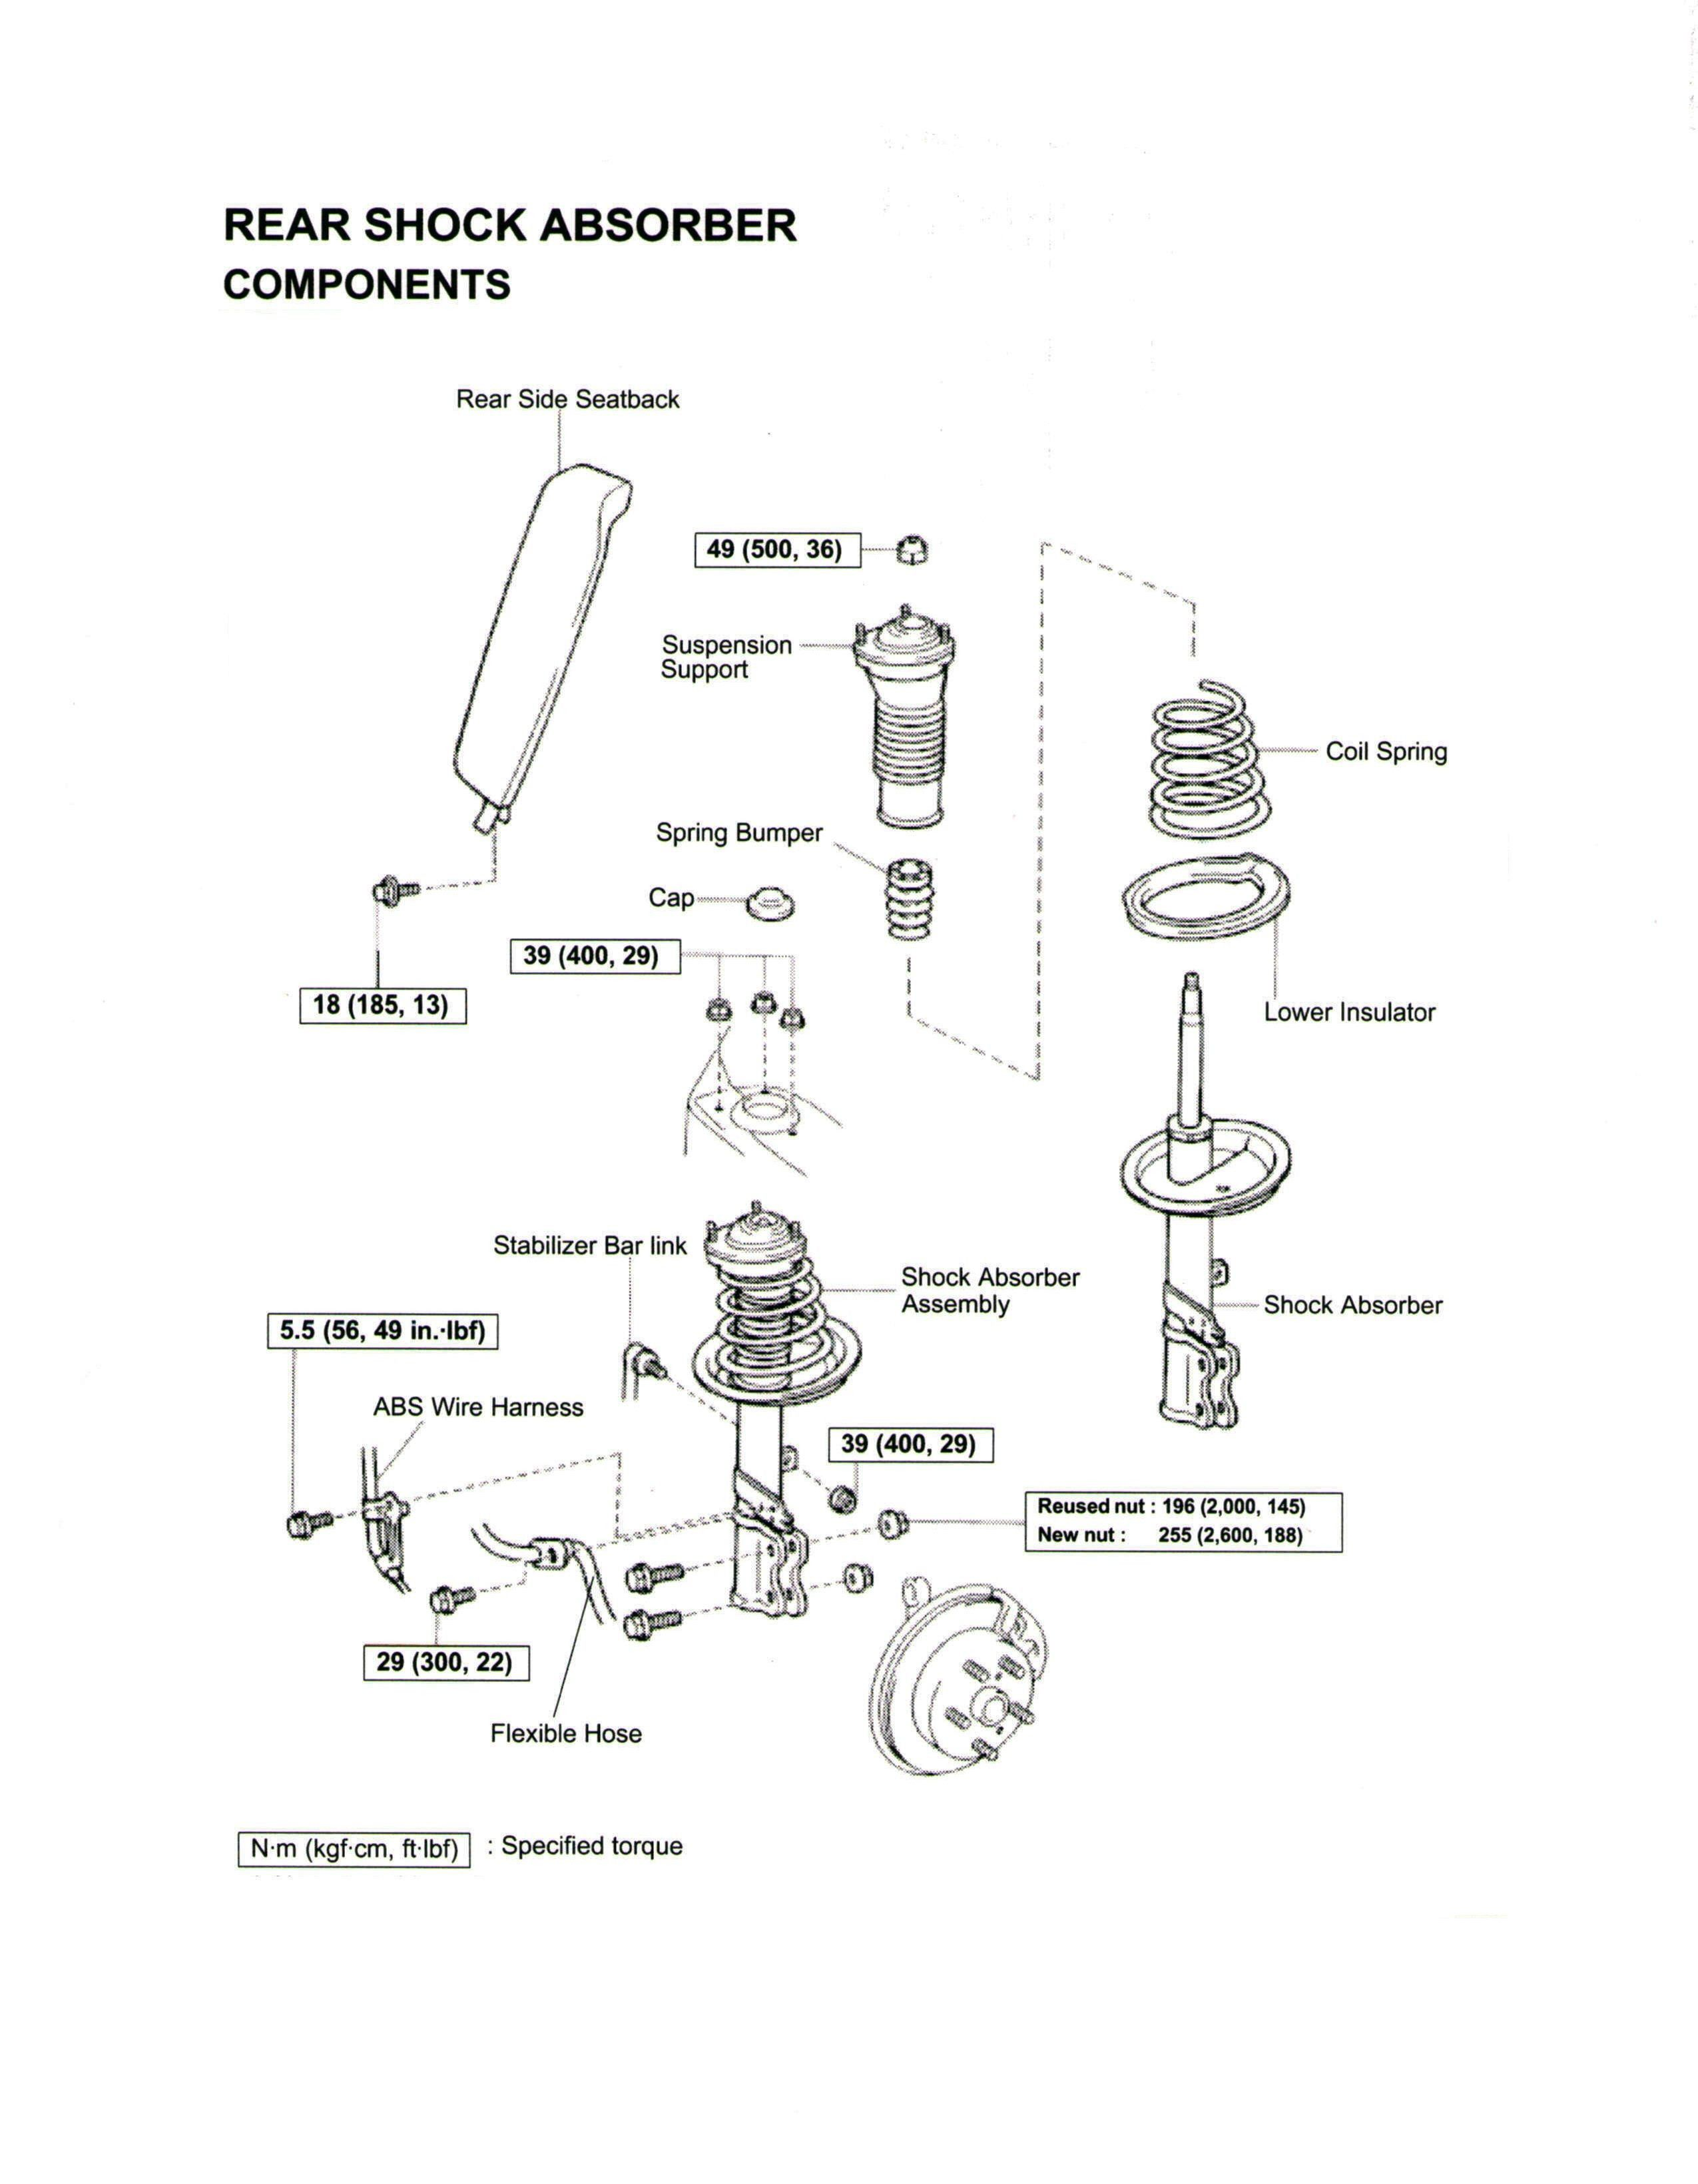 1997 toyota Camry Engine Diagram | Toyota camry, Camry, Used toyota camry | 1997 Toyota Camry Wiring Diagram |  | Pinterest